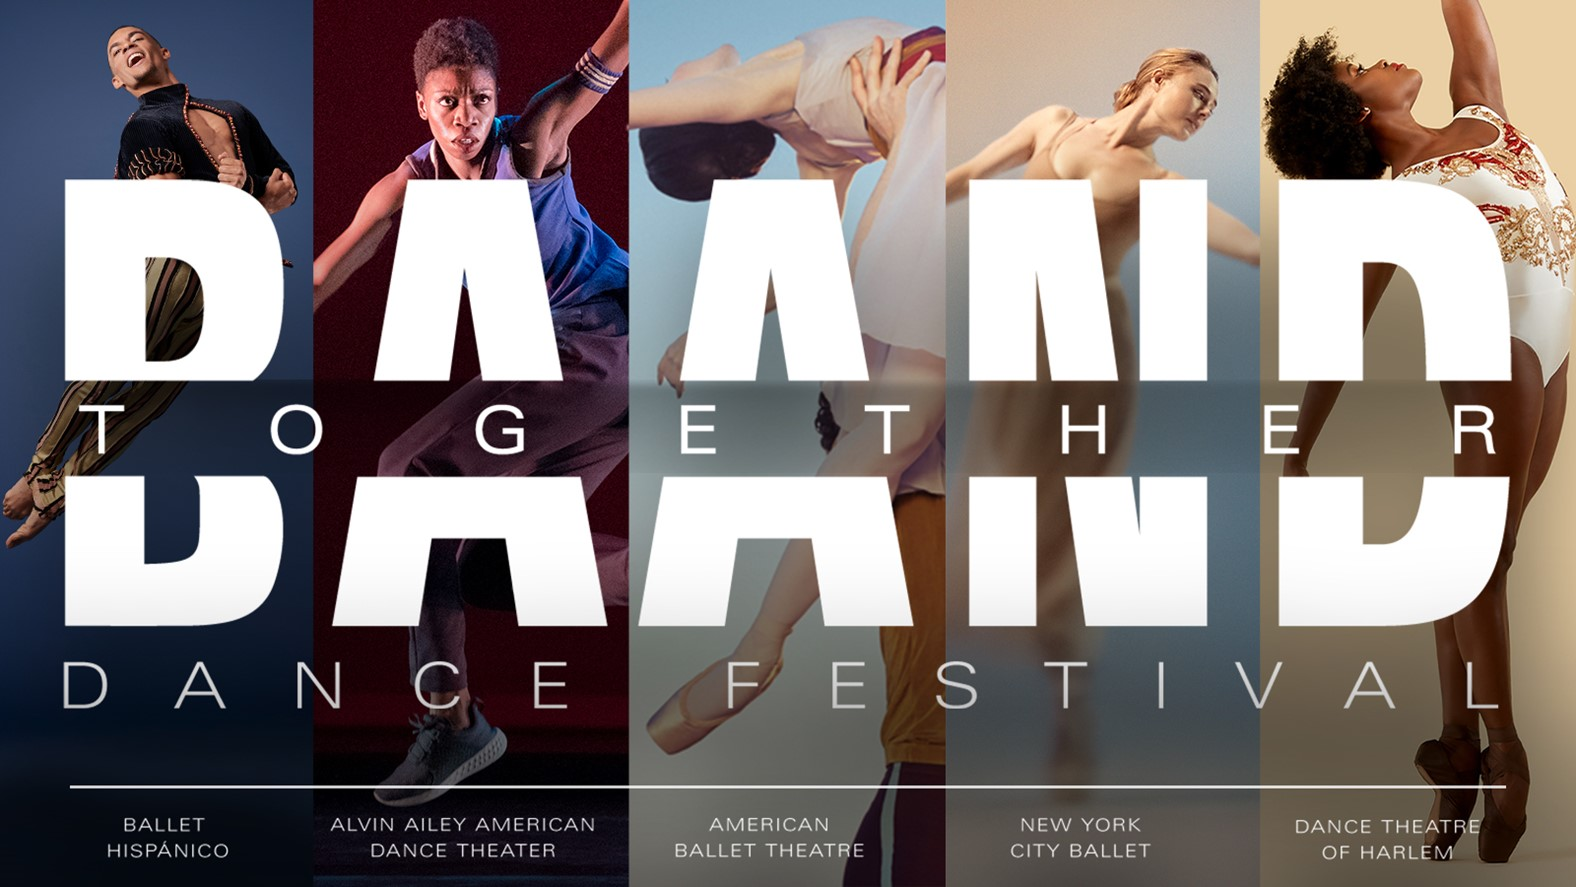 BAAND Together Dance Festival – Performances by Alvin Ailey American Dance Theater, American Ballet Theatre, Ballet Hispánico, Dance Theatre of Harlem, and New York City Ballet at Damrosch Park at Damrosch Park